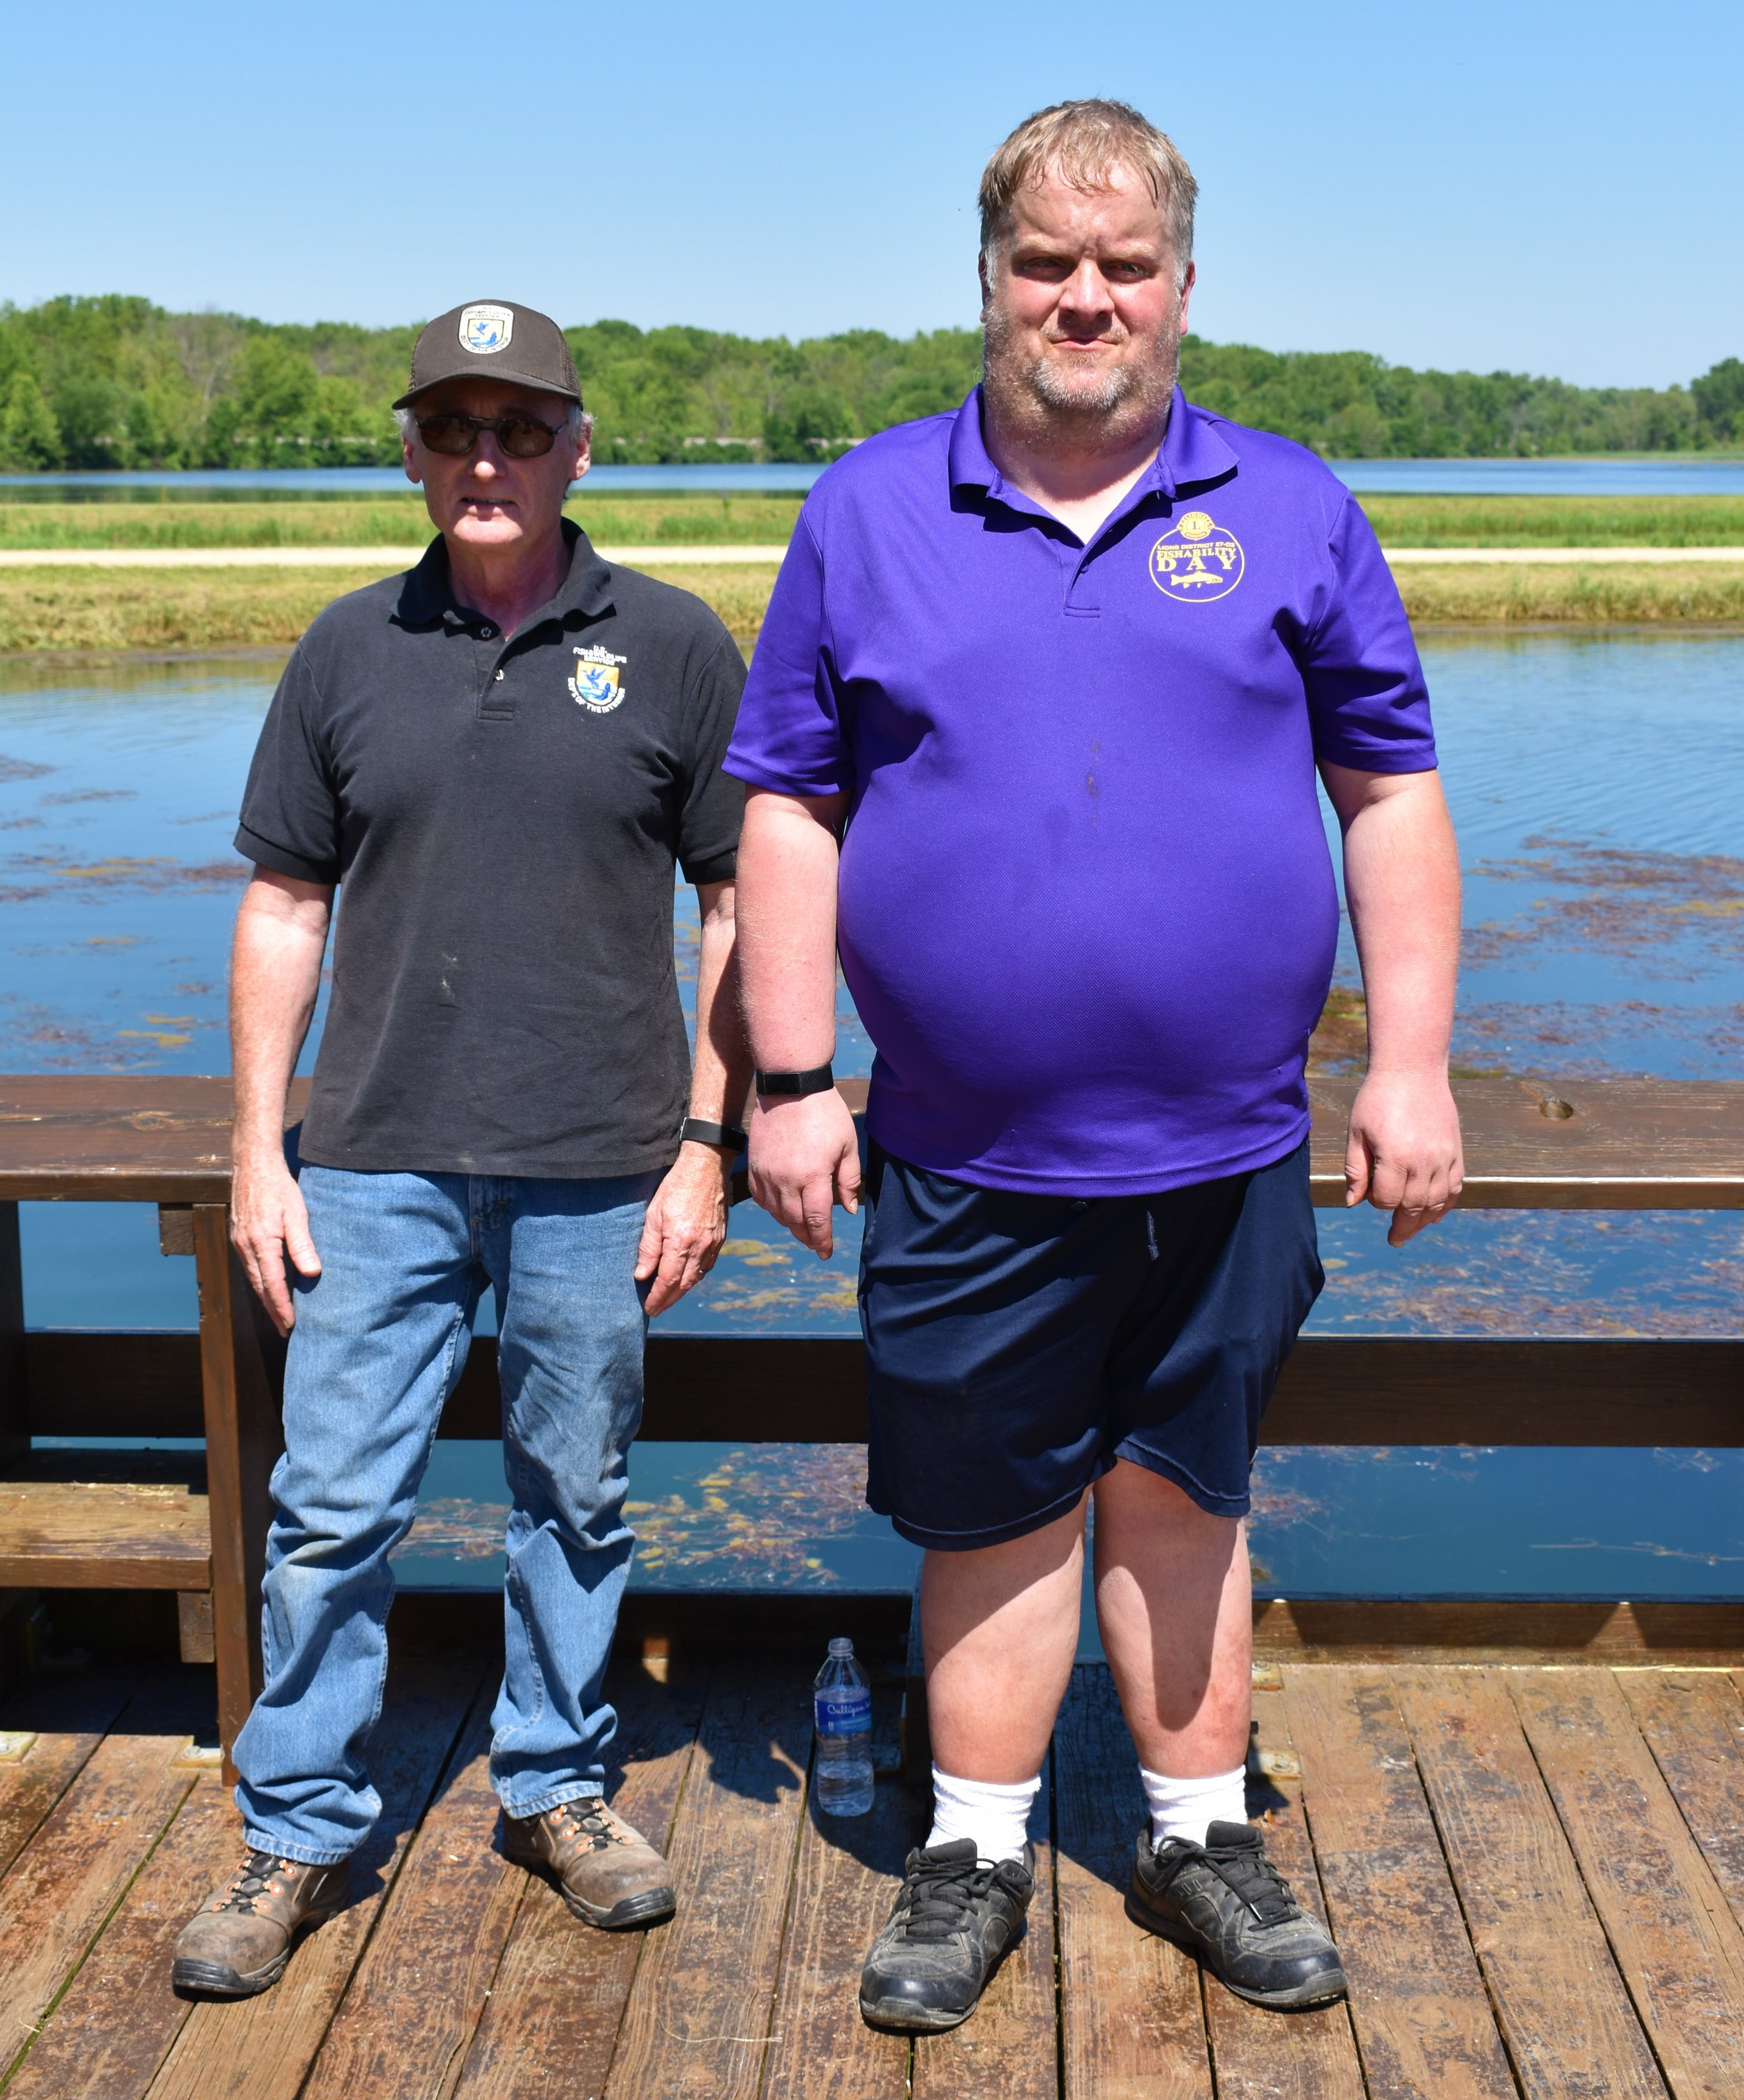 L to R-Genoa Fisheries Manager Doug Aloisi and Dan Wolfe, Fishability Day event chair and member of the Stoddard Lions Club